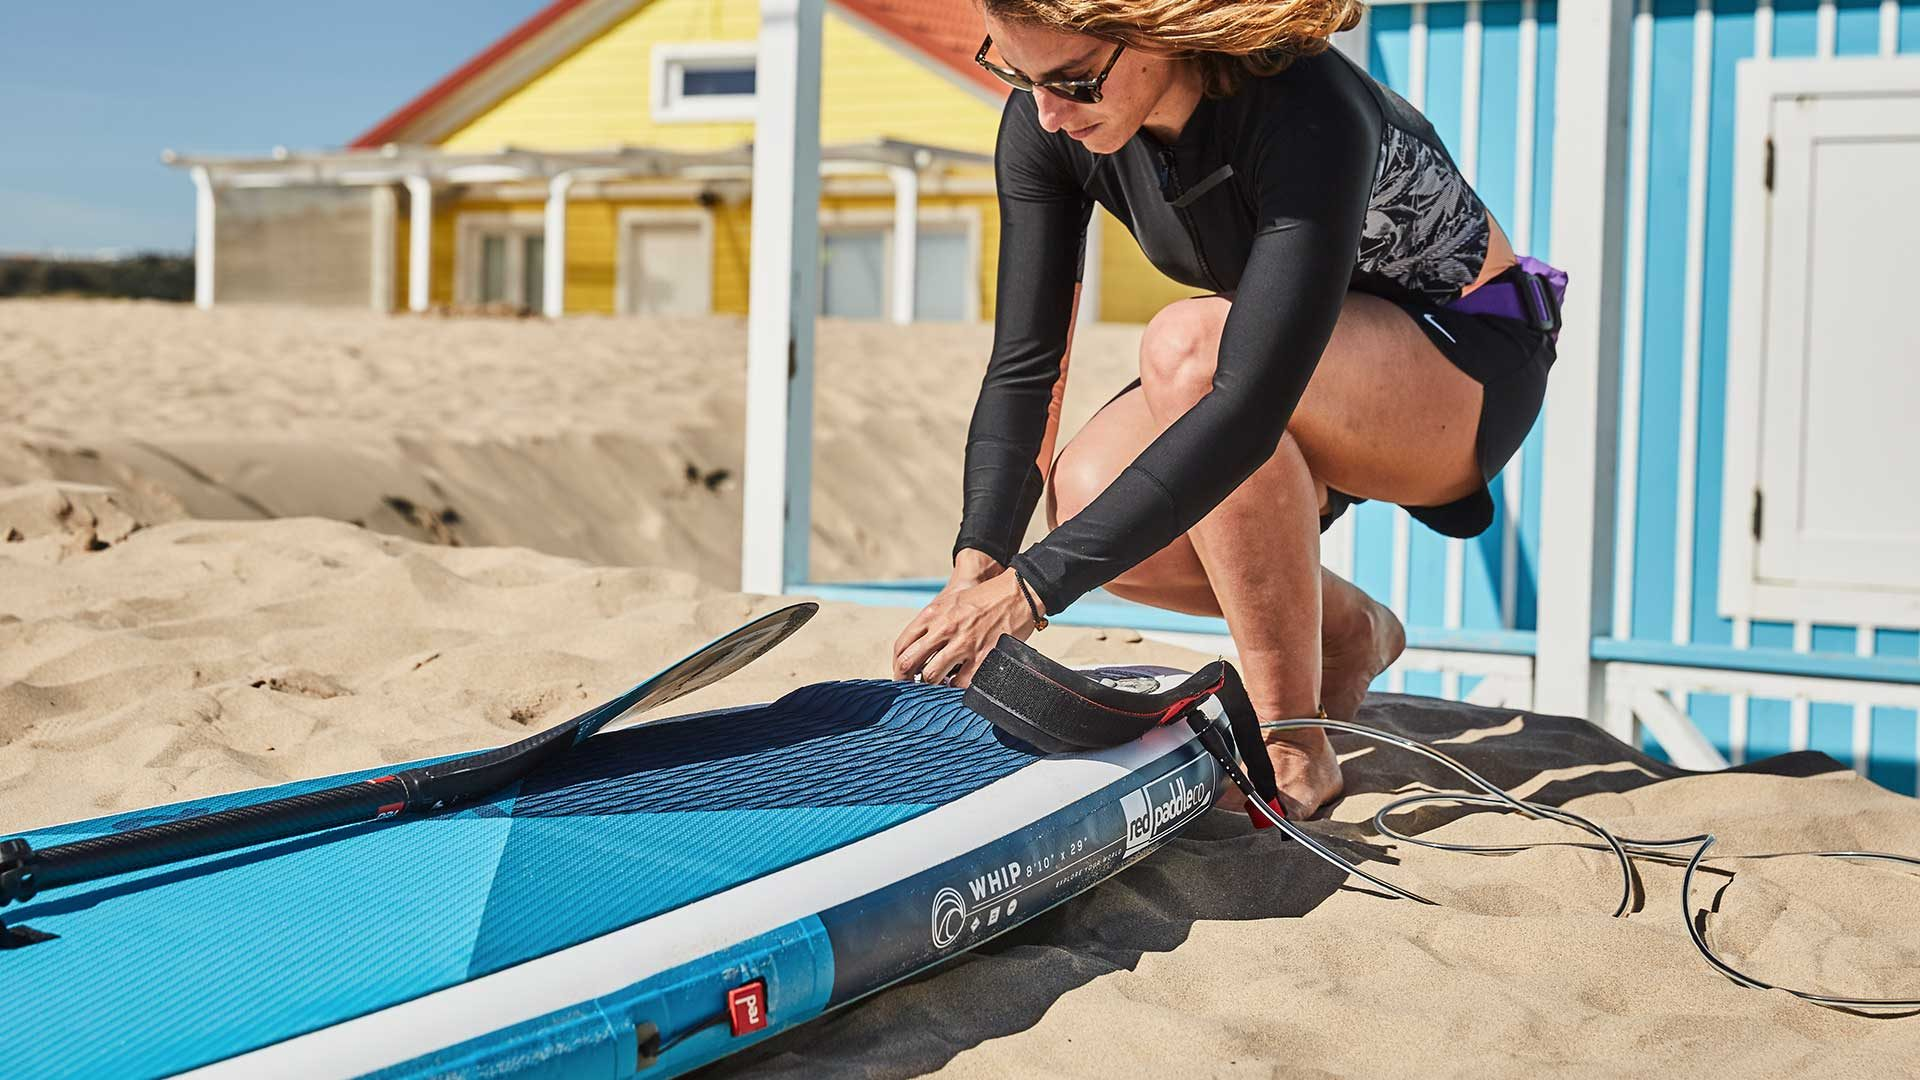 redpaddleco-810-whip-msl-inflatable-paddle-board-desktop-gallery-deckpad